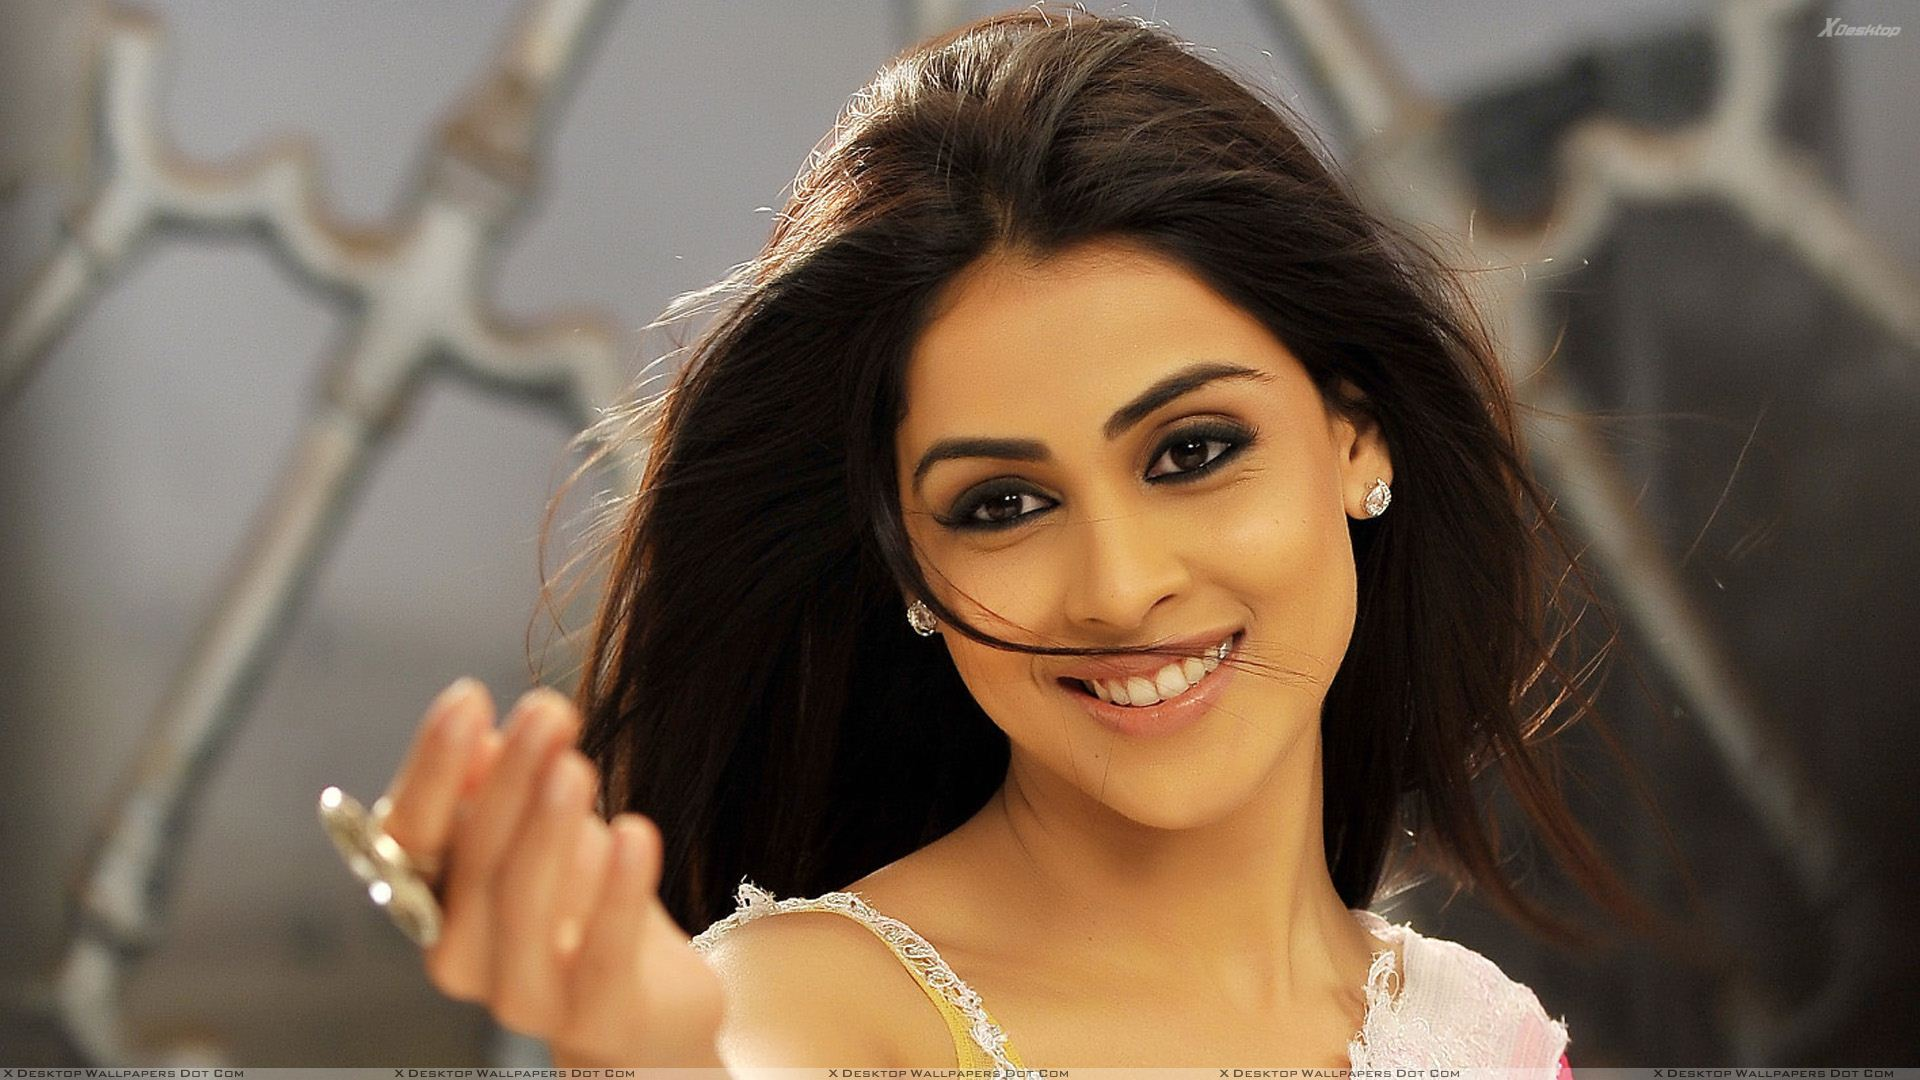 genelia d souza wallpapers high resolution and quality download